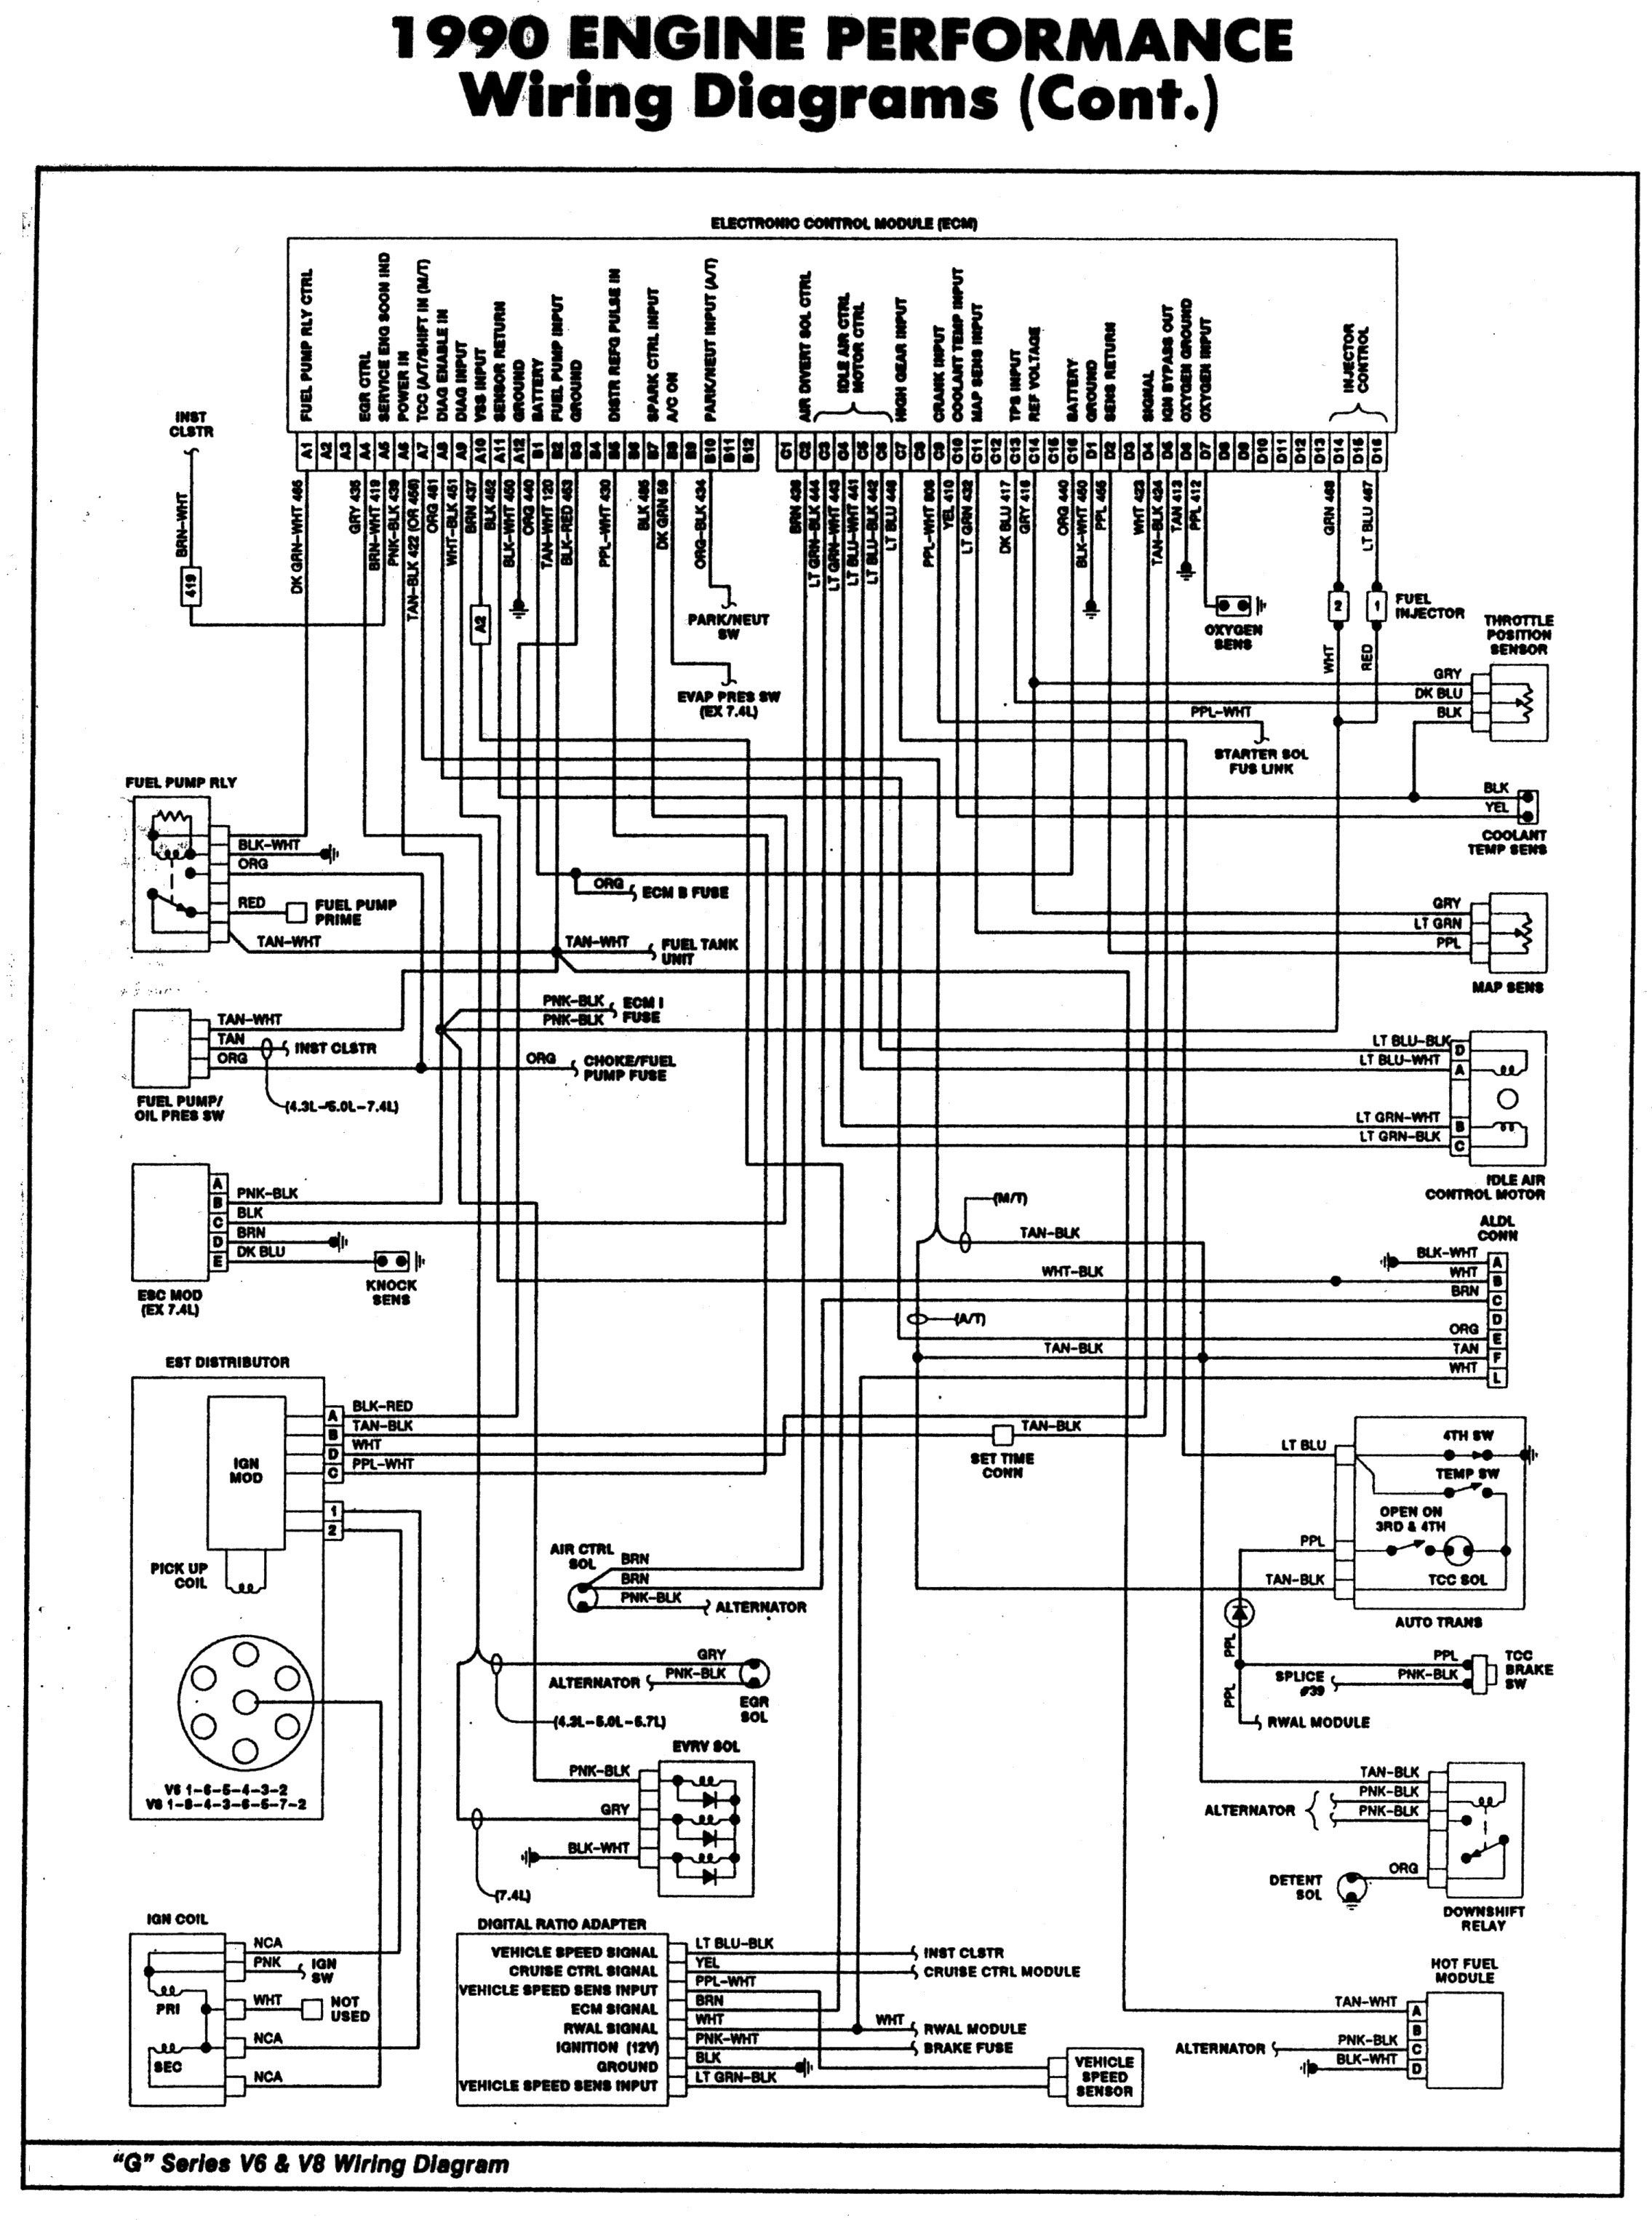 1994 Chevy Truck Wiring Diagram Free Inspirational 2000 Chevrolet |  Electrical wiring diagram, Chevy trucks, Chevy pickupsPinterest